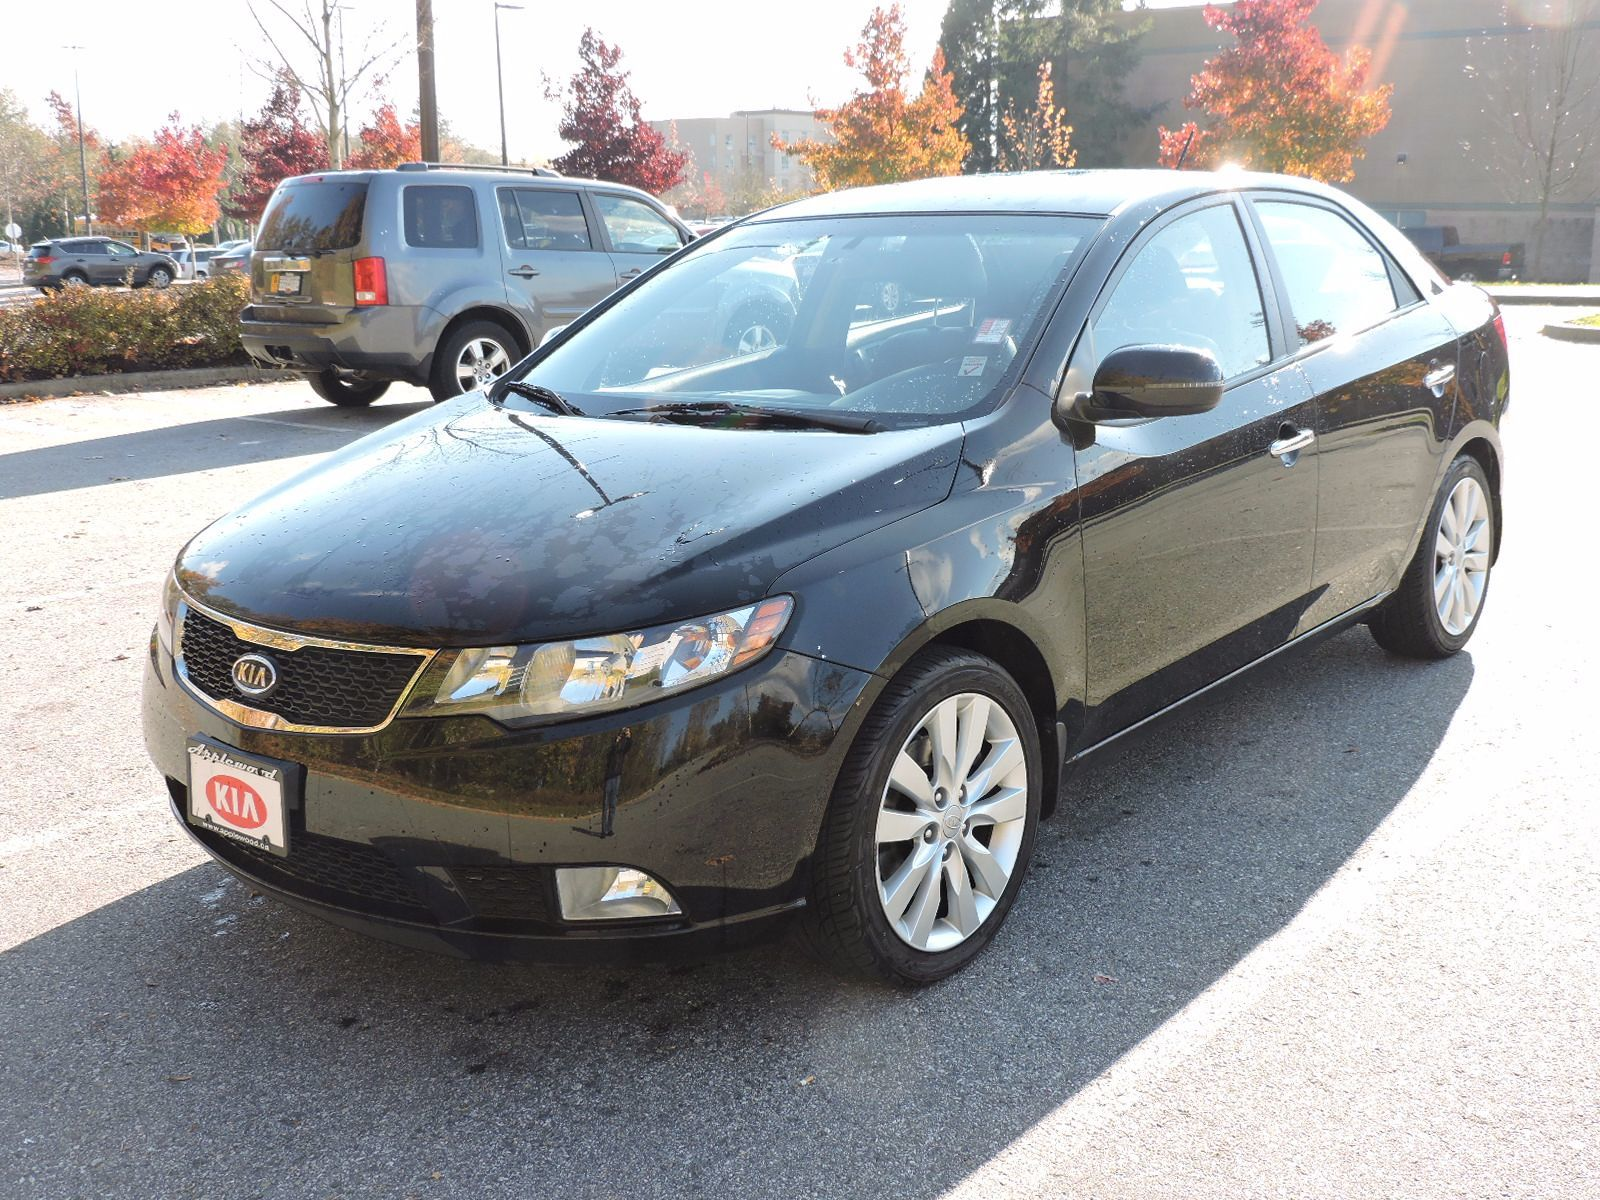 koup overview forte kia pic sale cars cargurus for